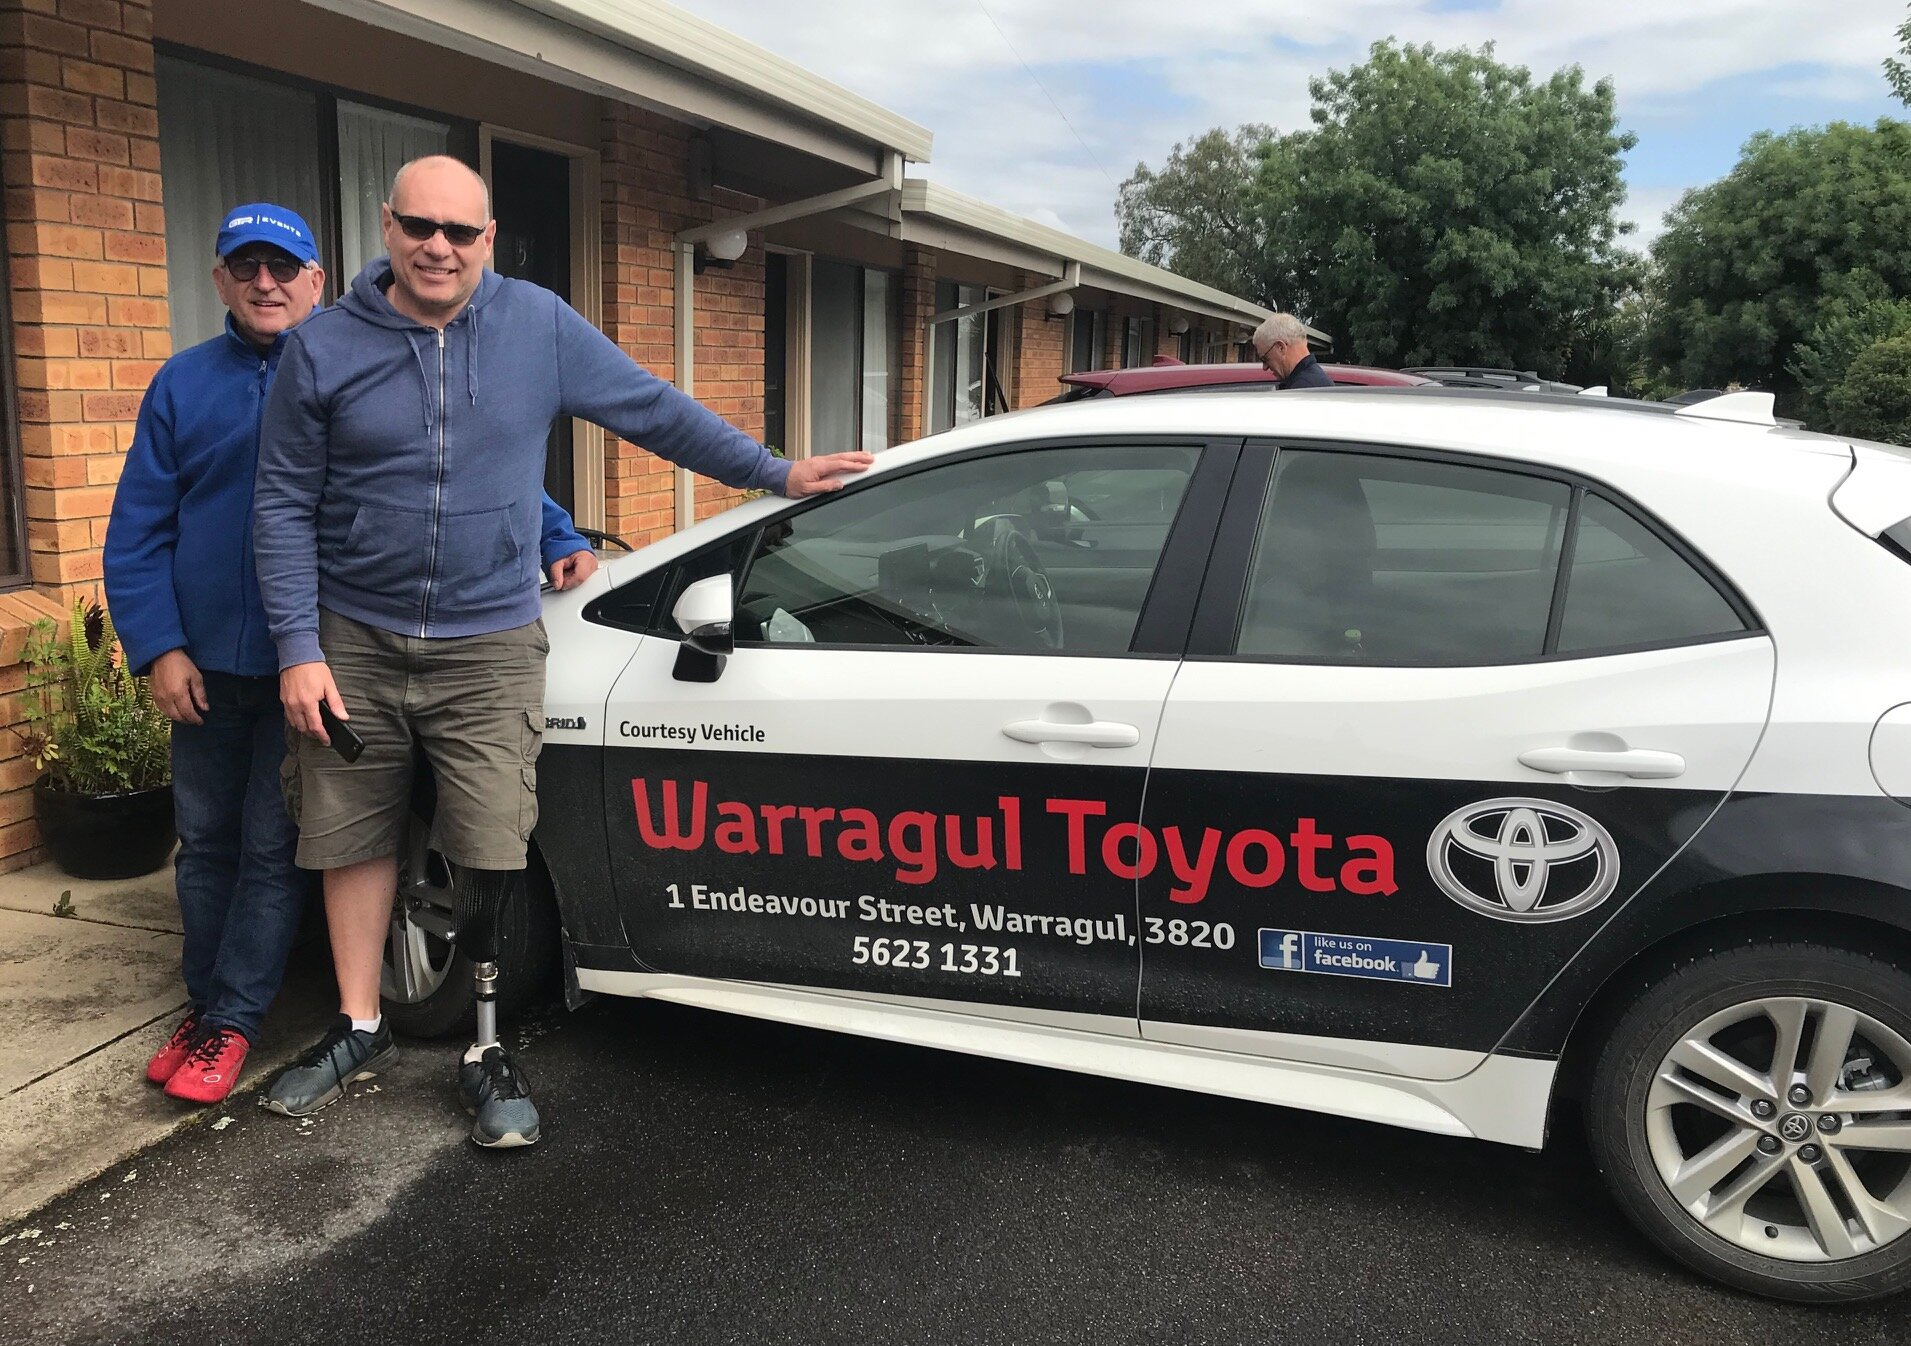 Tour of Gippsland @ 26 Oct - Warragul Toyota kindly sponsored the three day NRS Tour and supplied the convoy vehicles for Mike O'Reilly & Alex Simmons